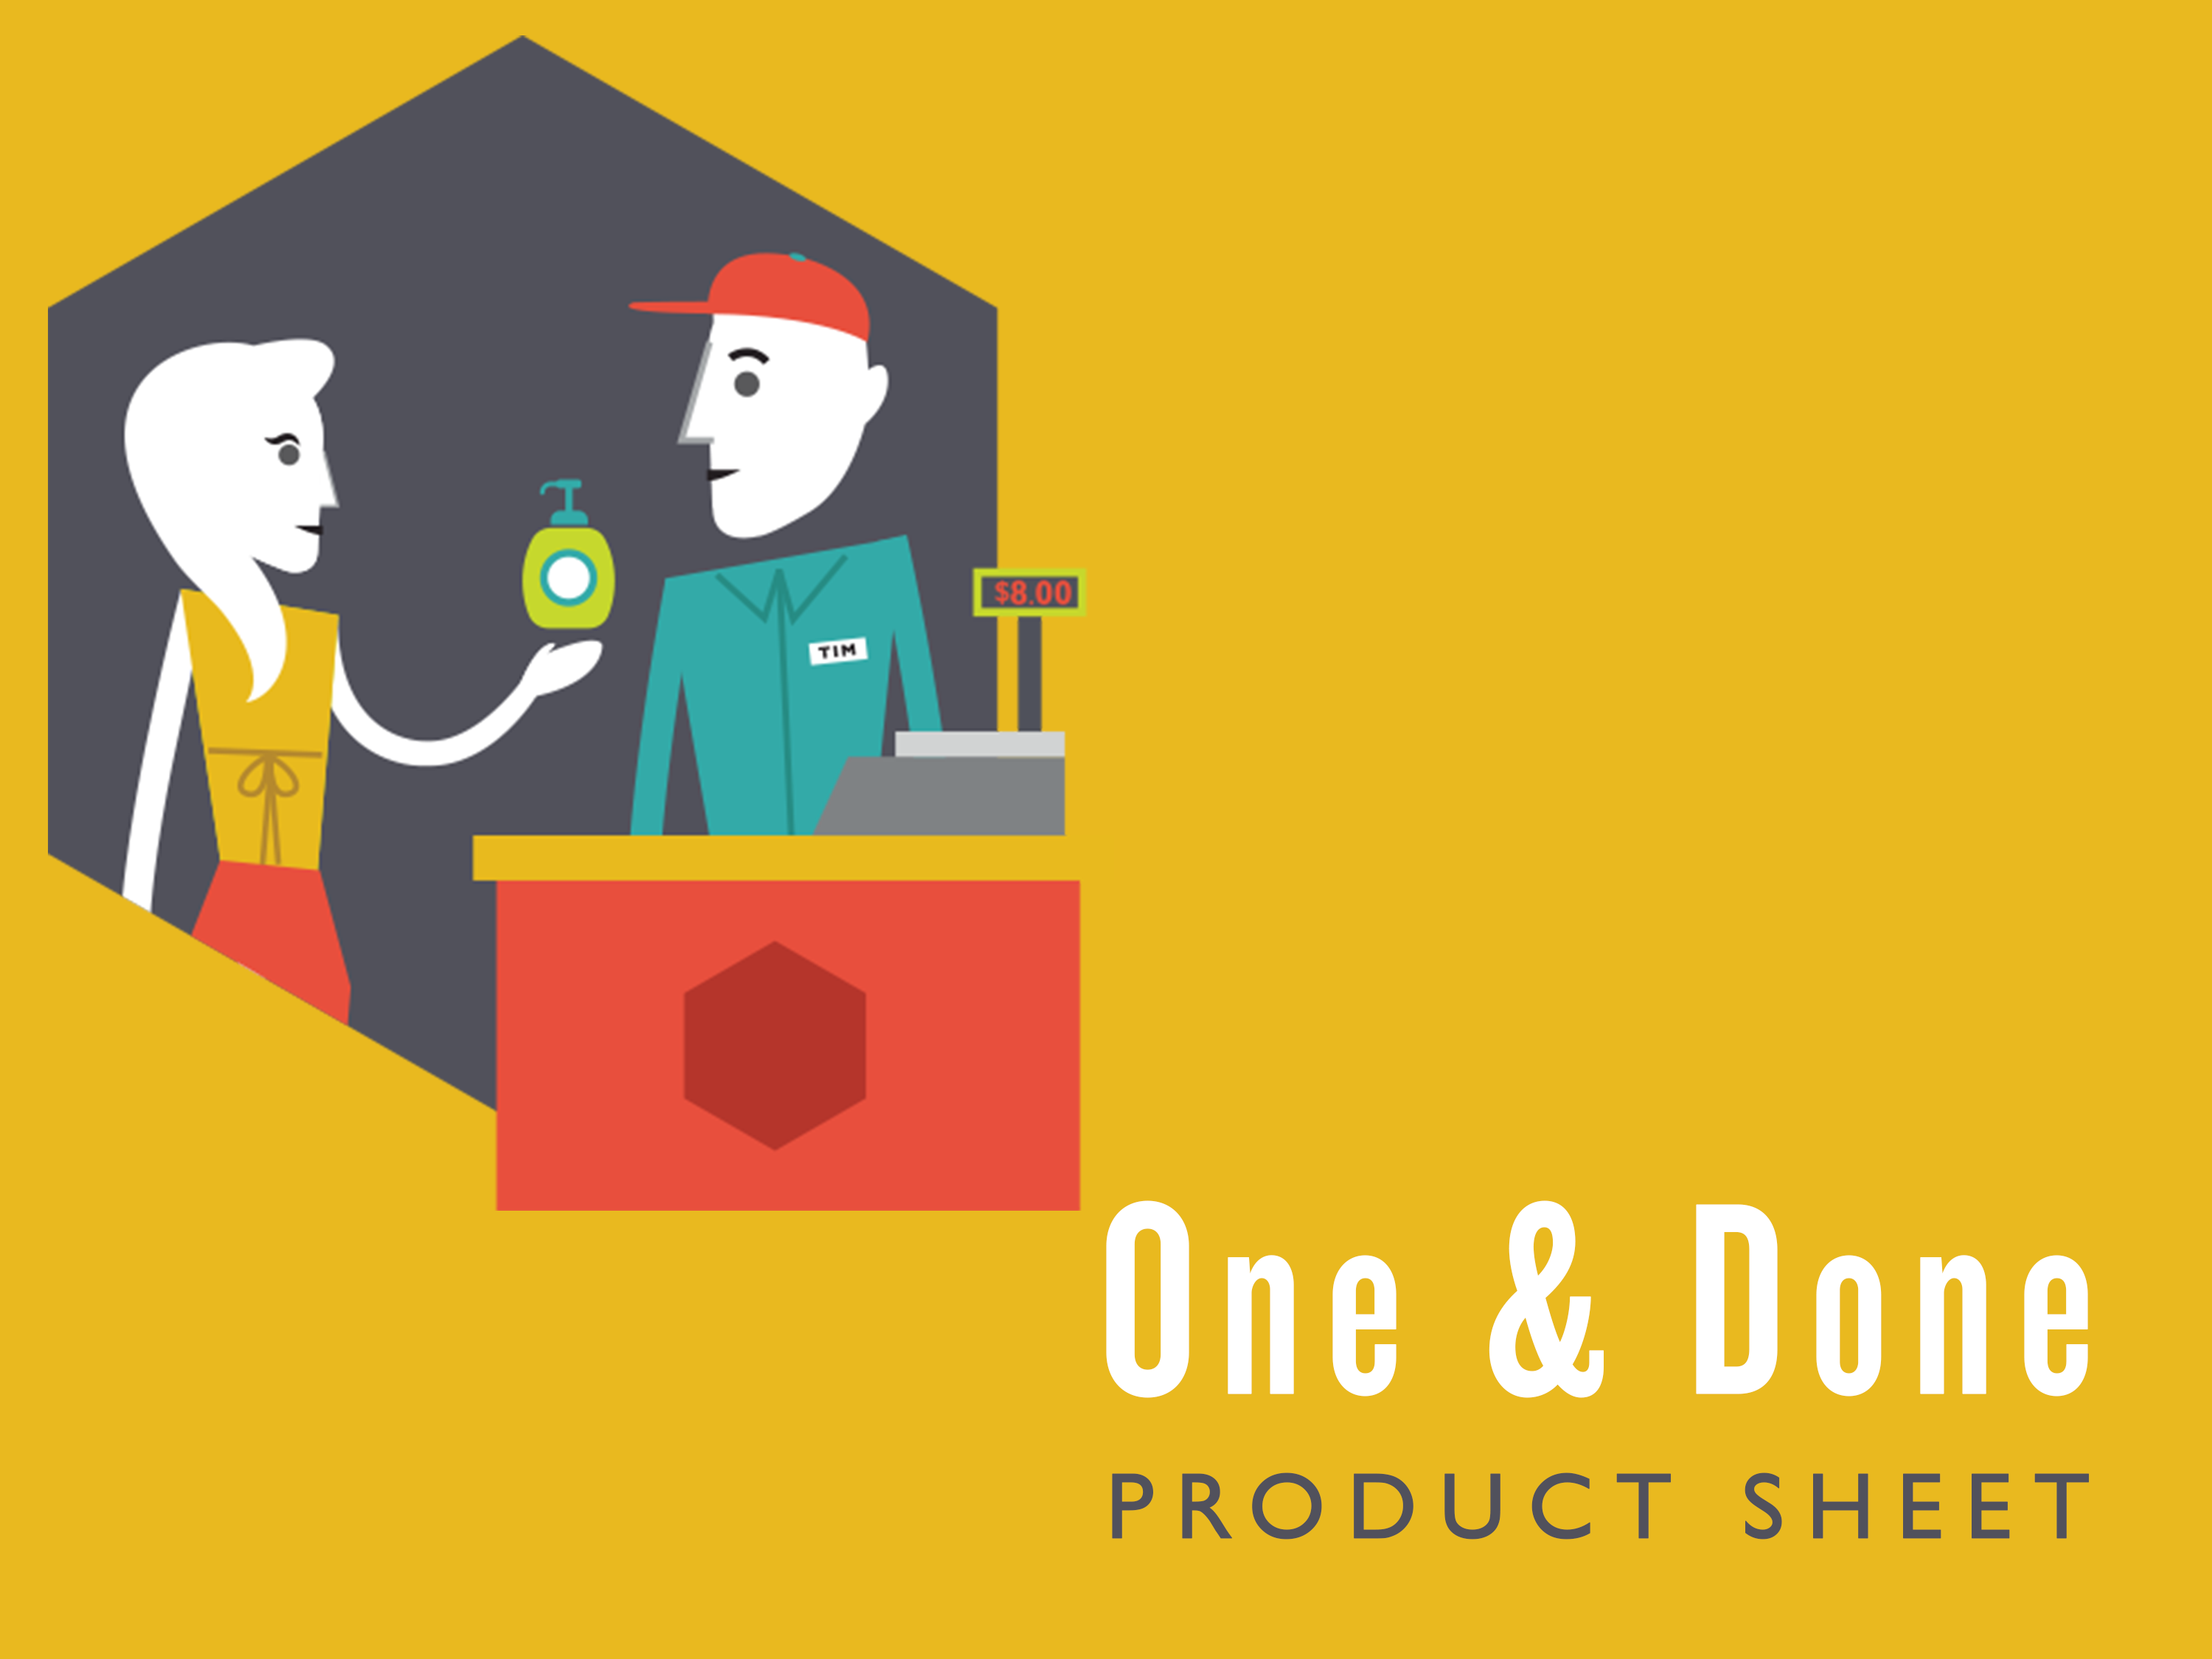 One & Done Product Sheet